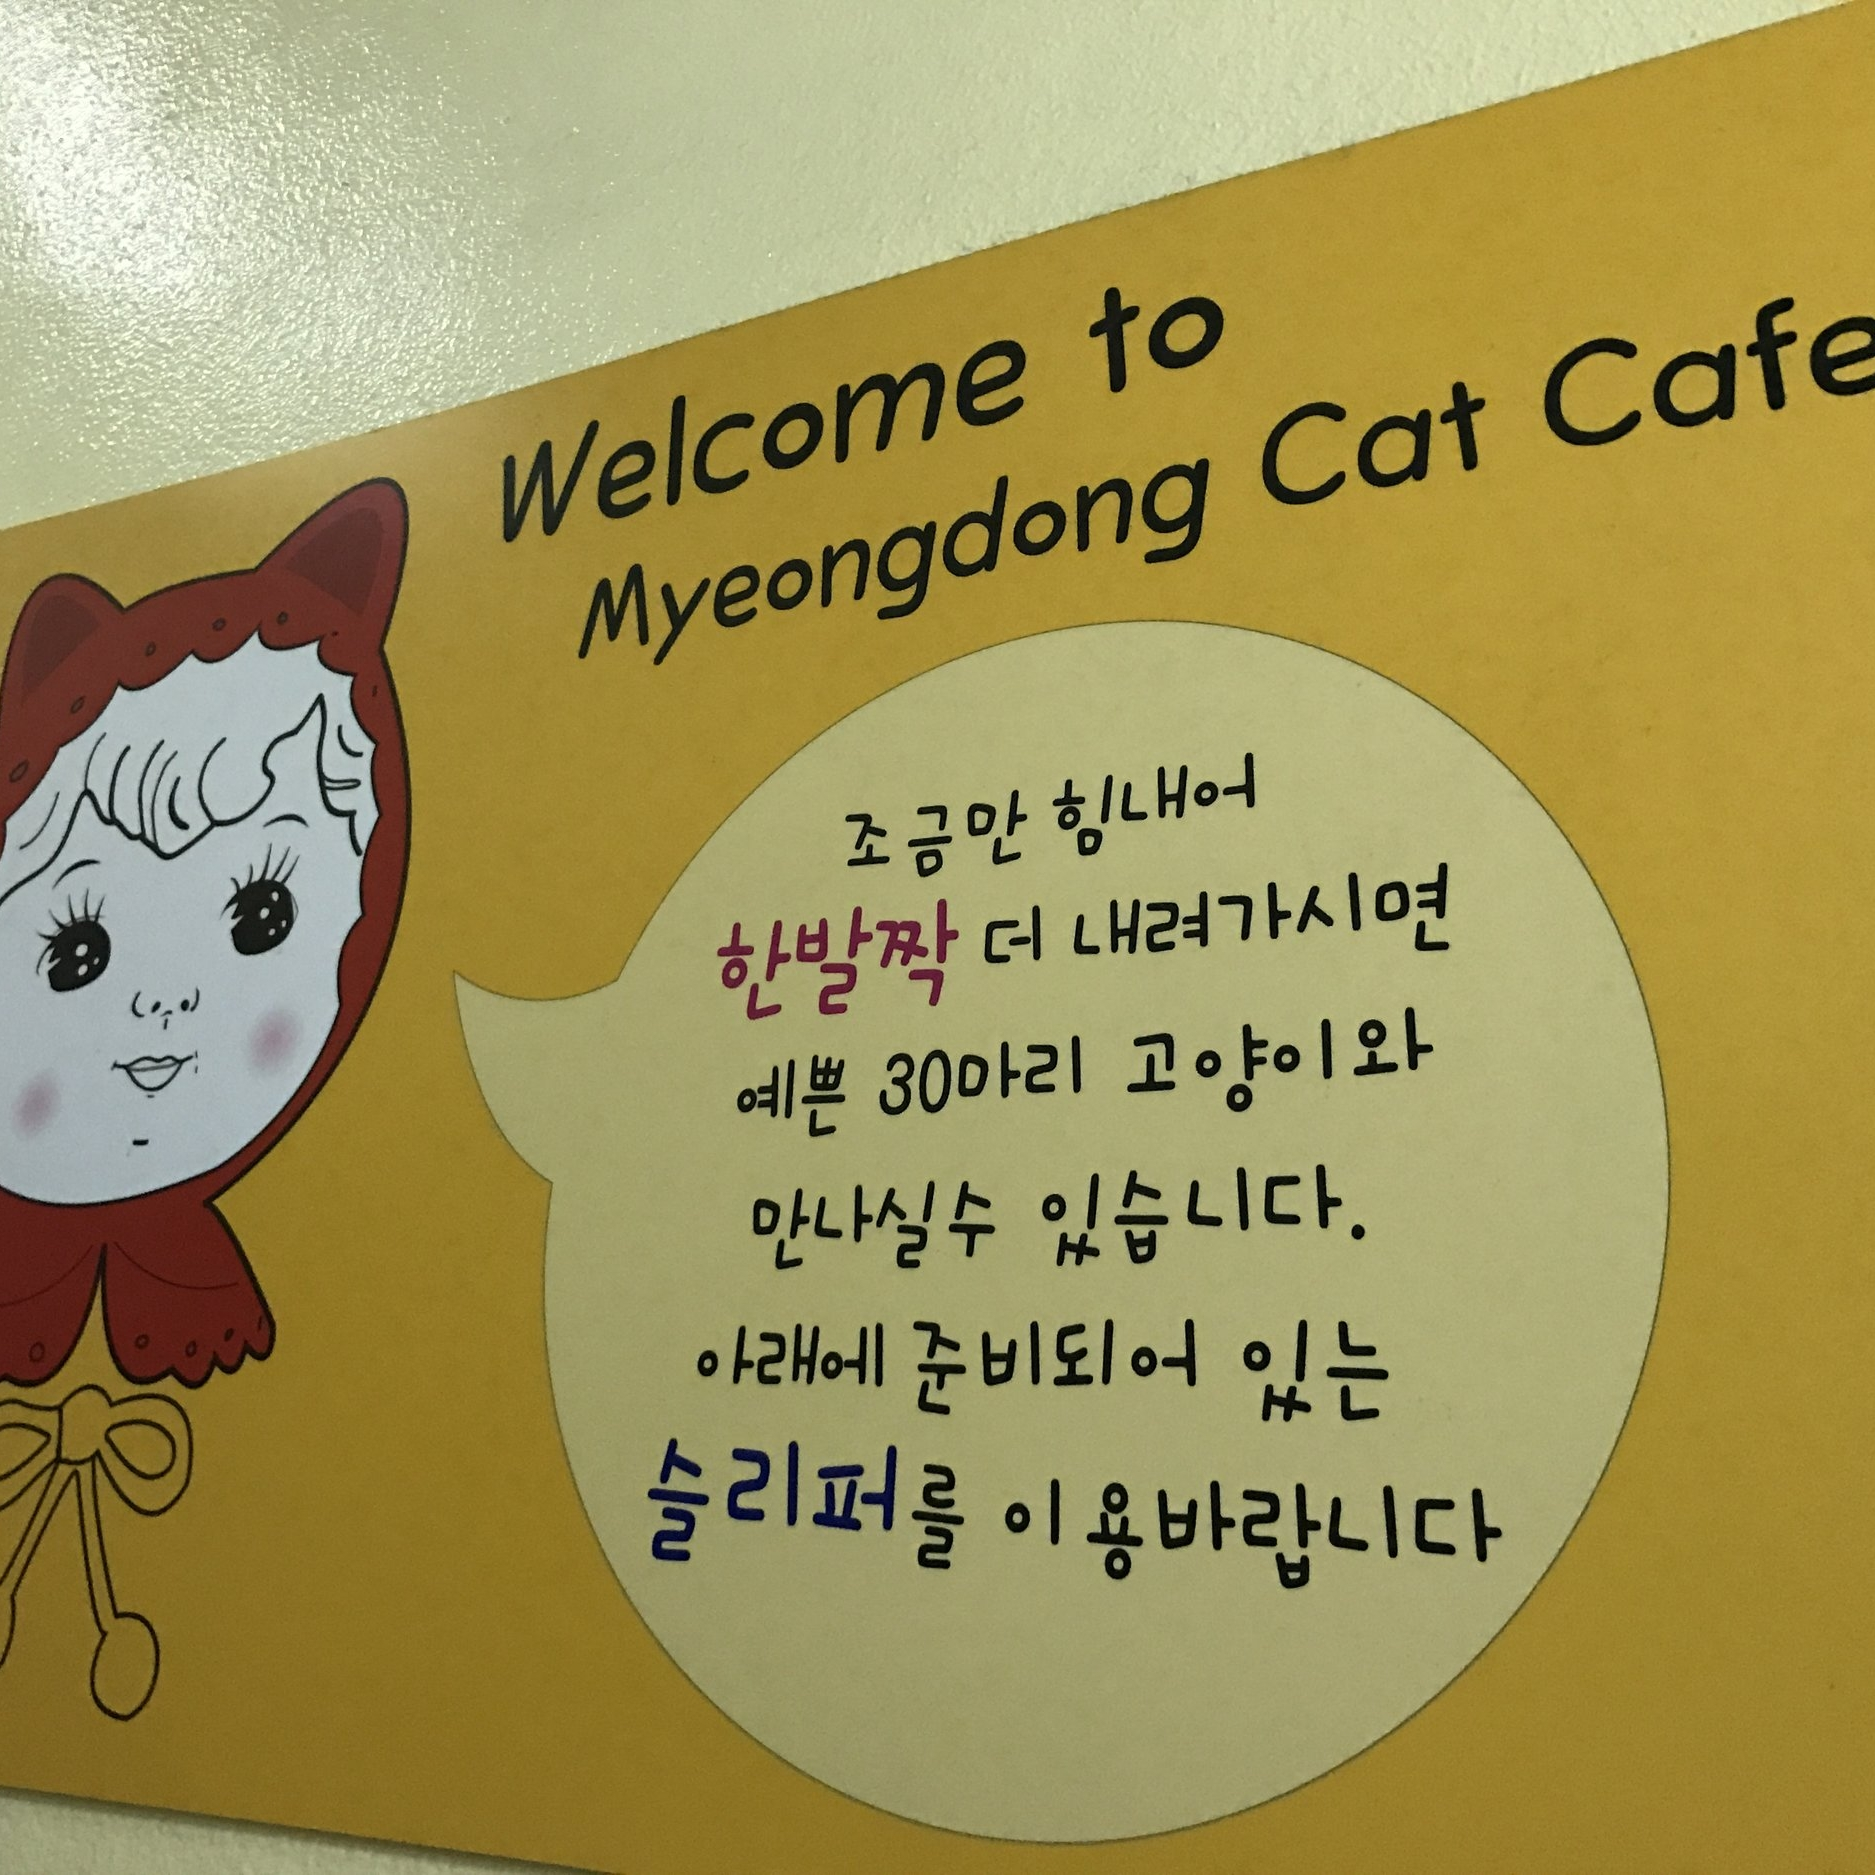 Myeongdong Cafe   Seoul, South Korea